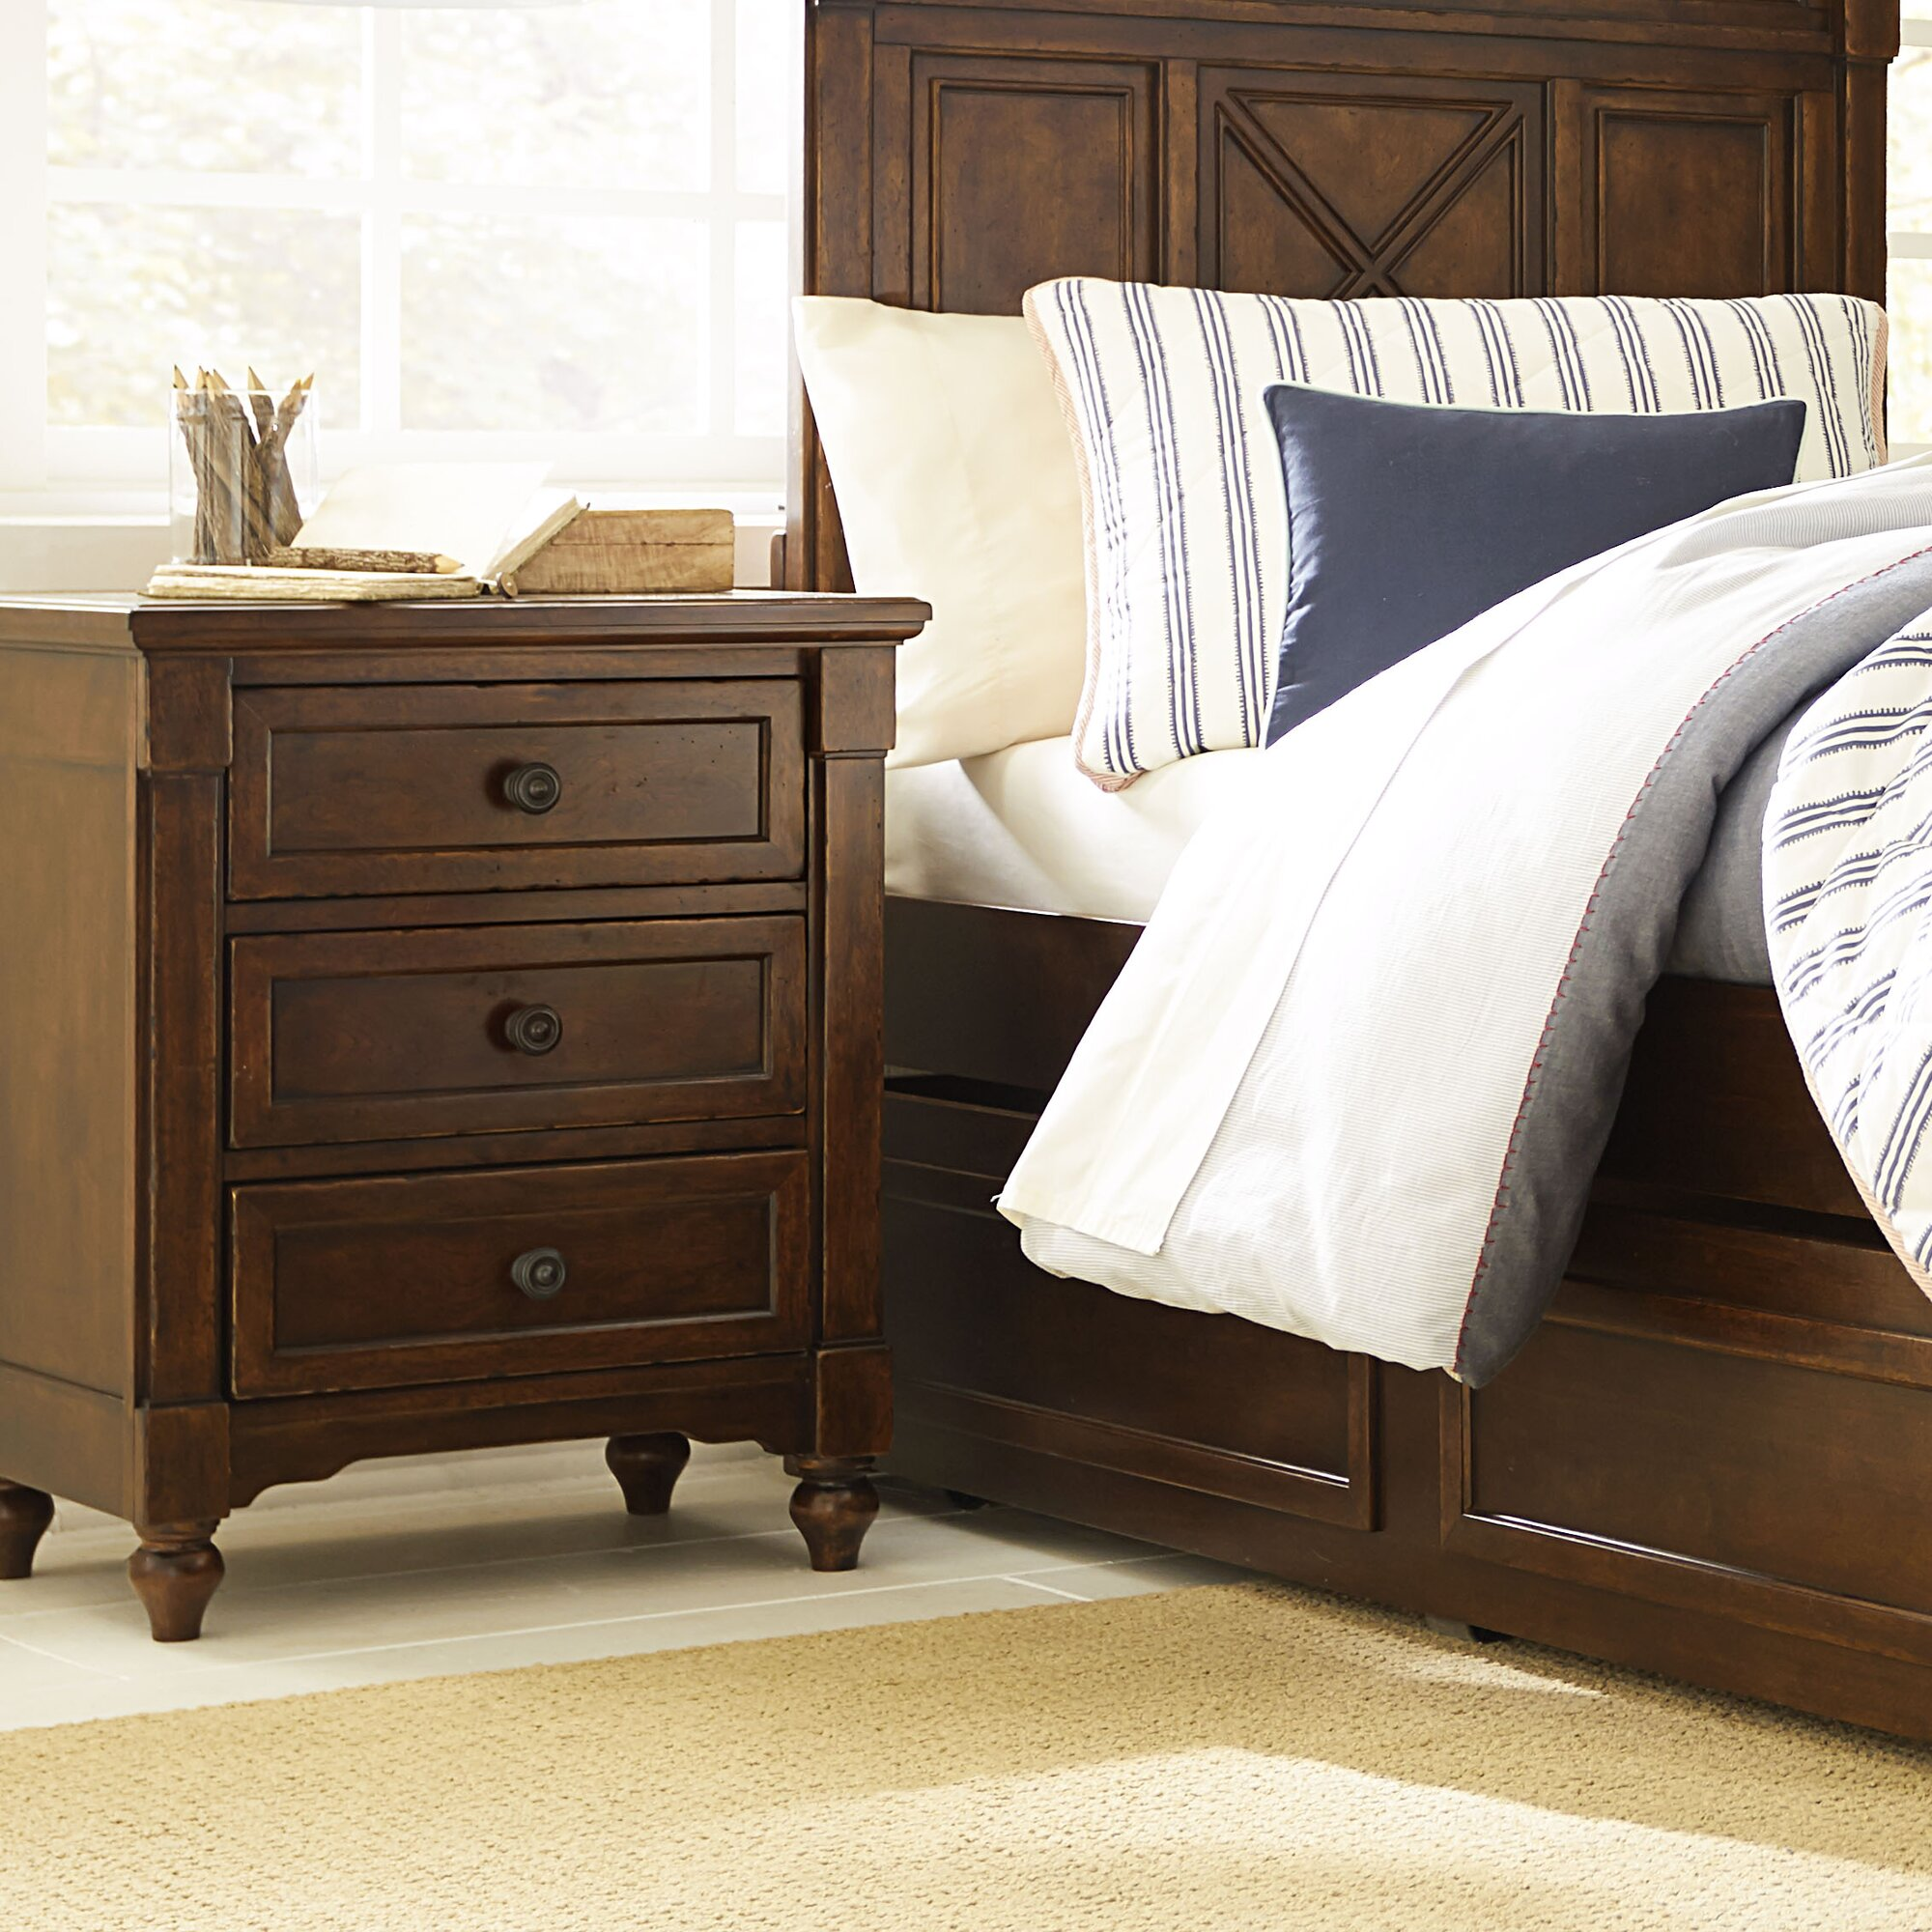 Lc kids big sur by wendy bellissimo twin panel for Big w bedroom furniture